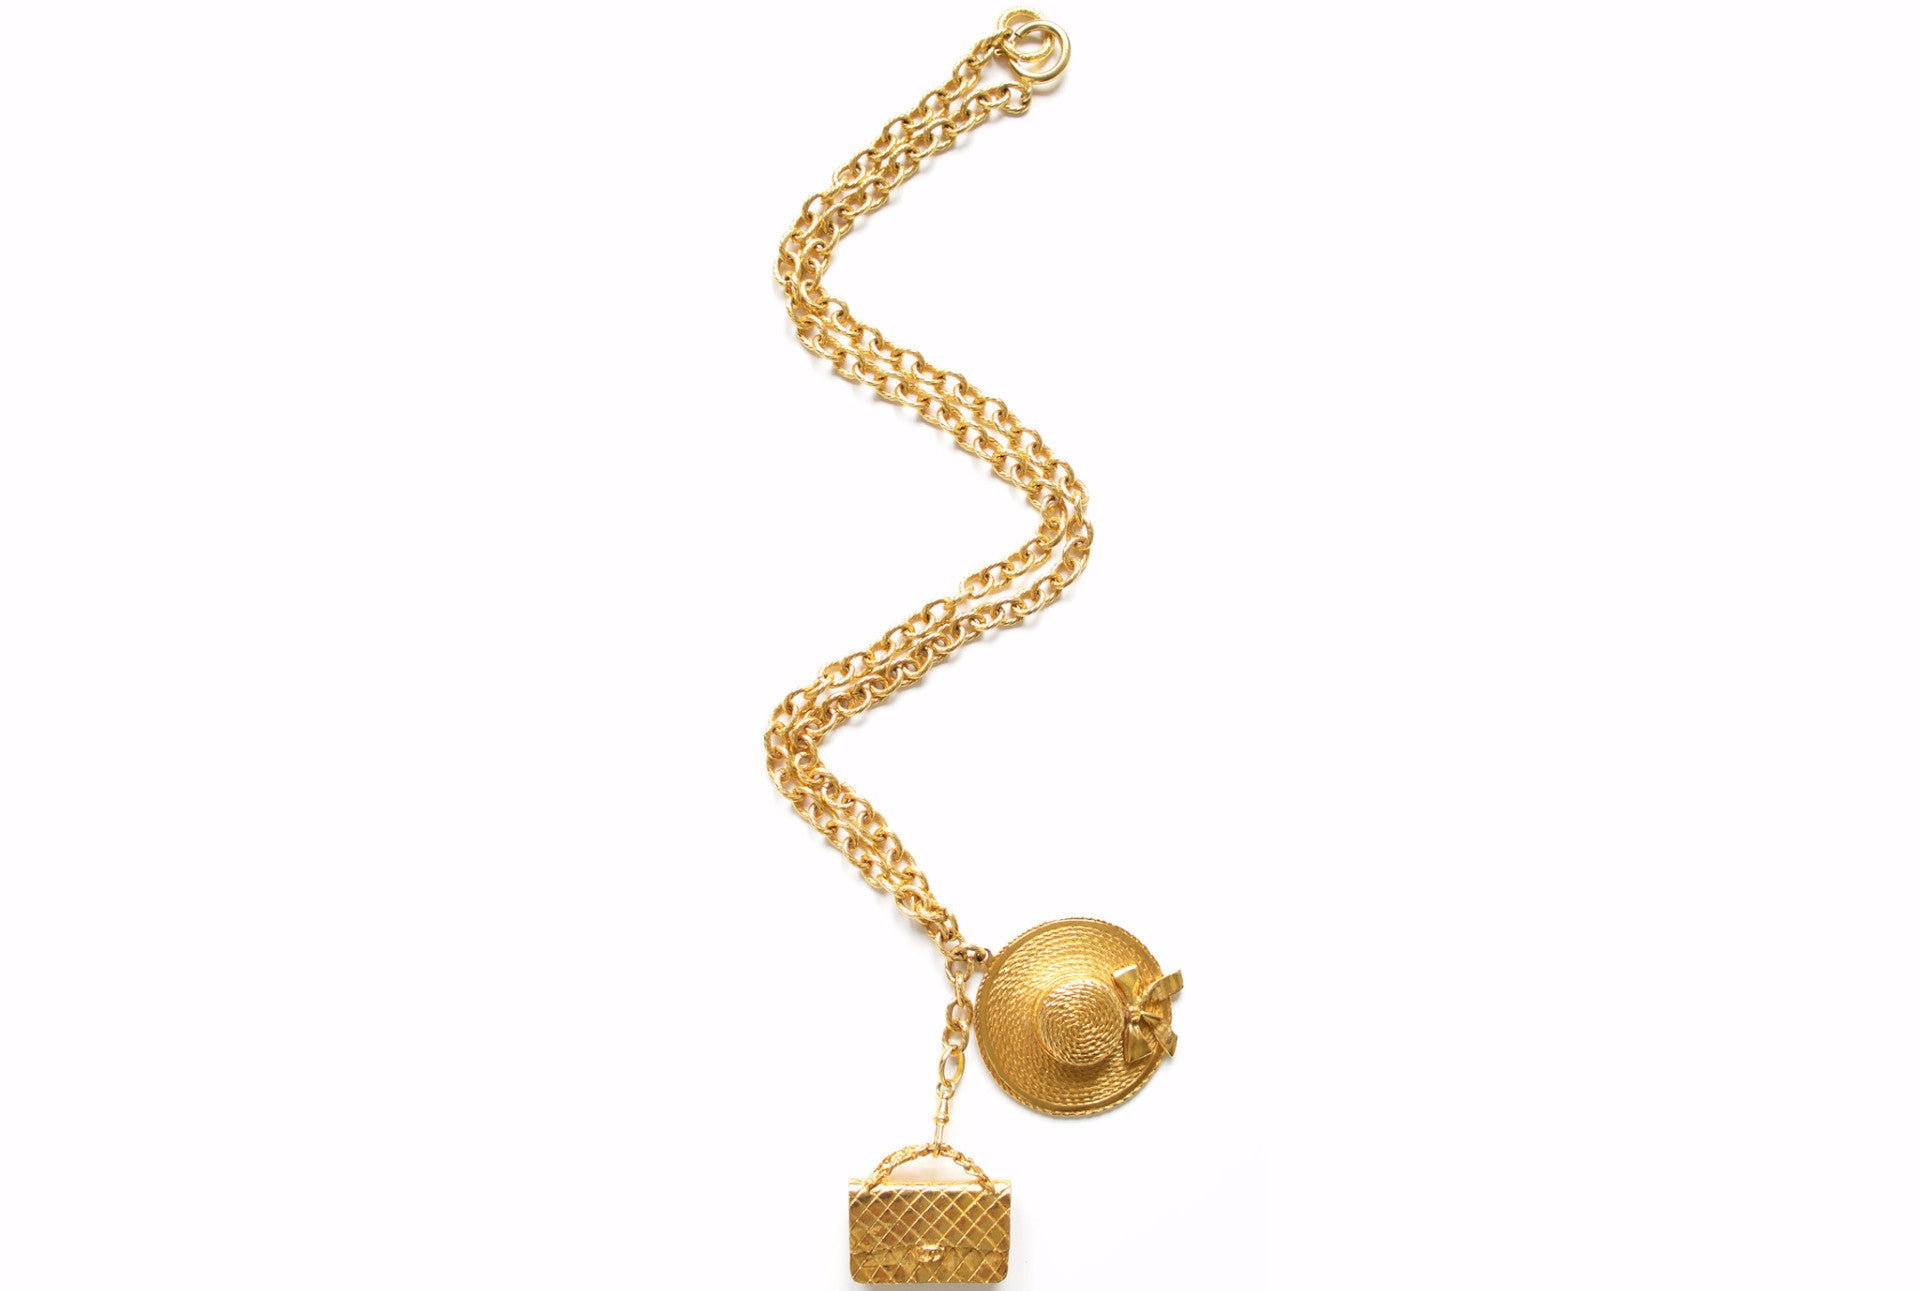 ef46fbaf75a91f CHANEL VINTAGE 2.55 CHARM NECKLACE - Vintage District